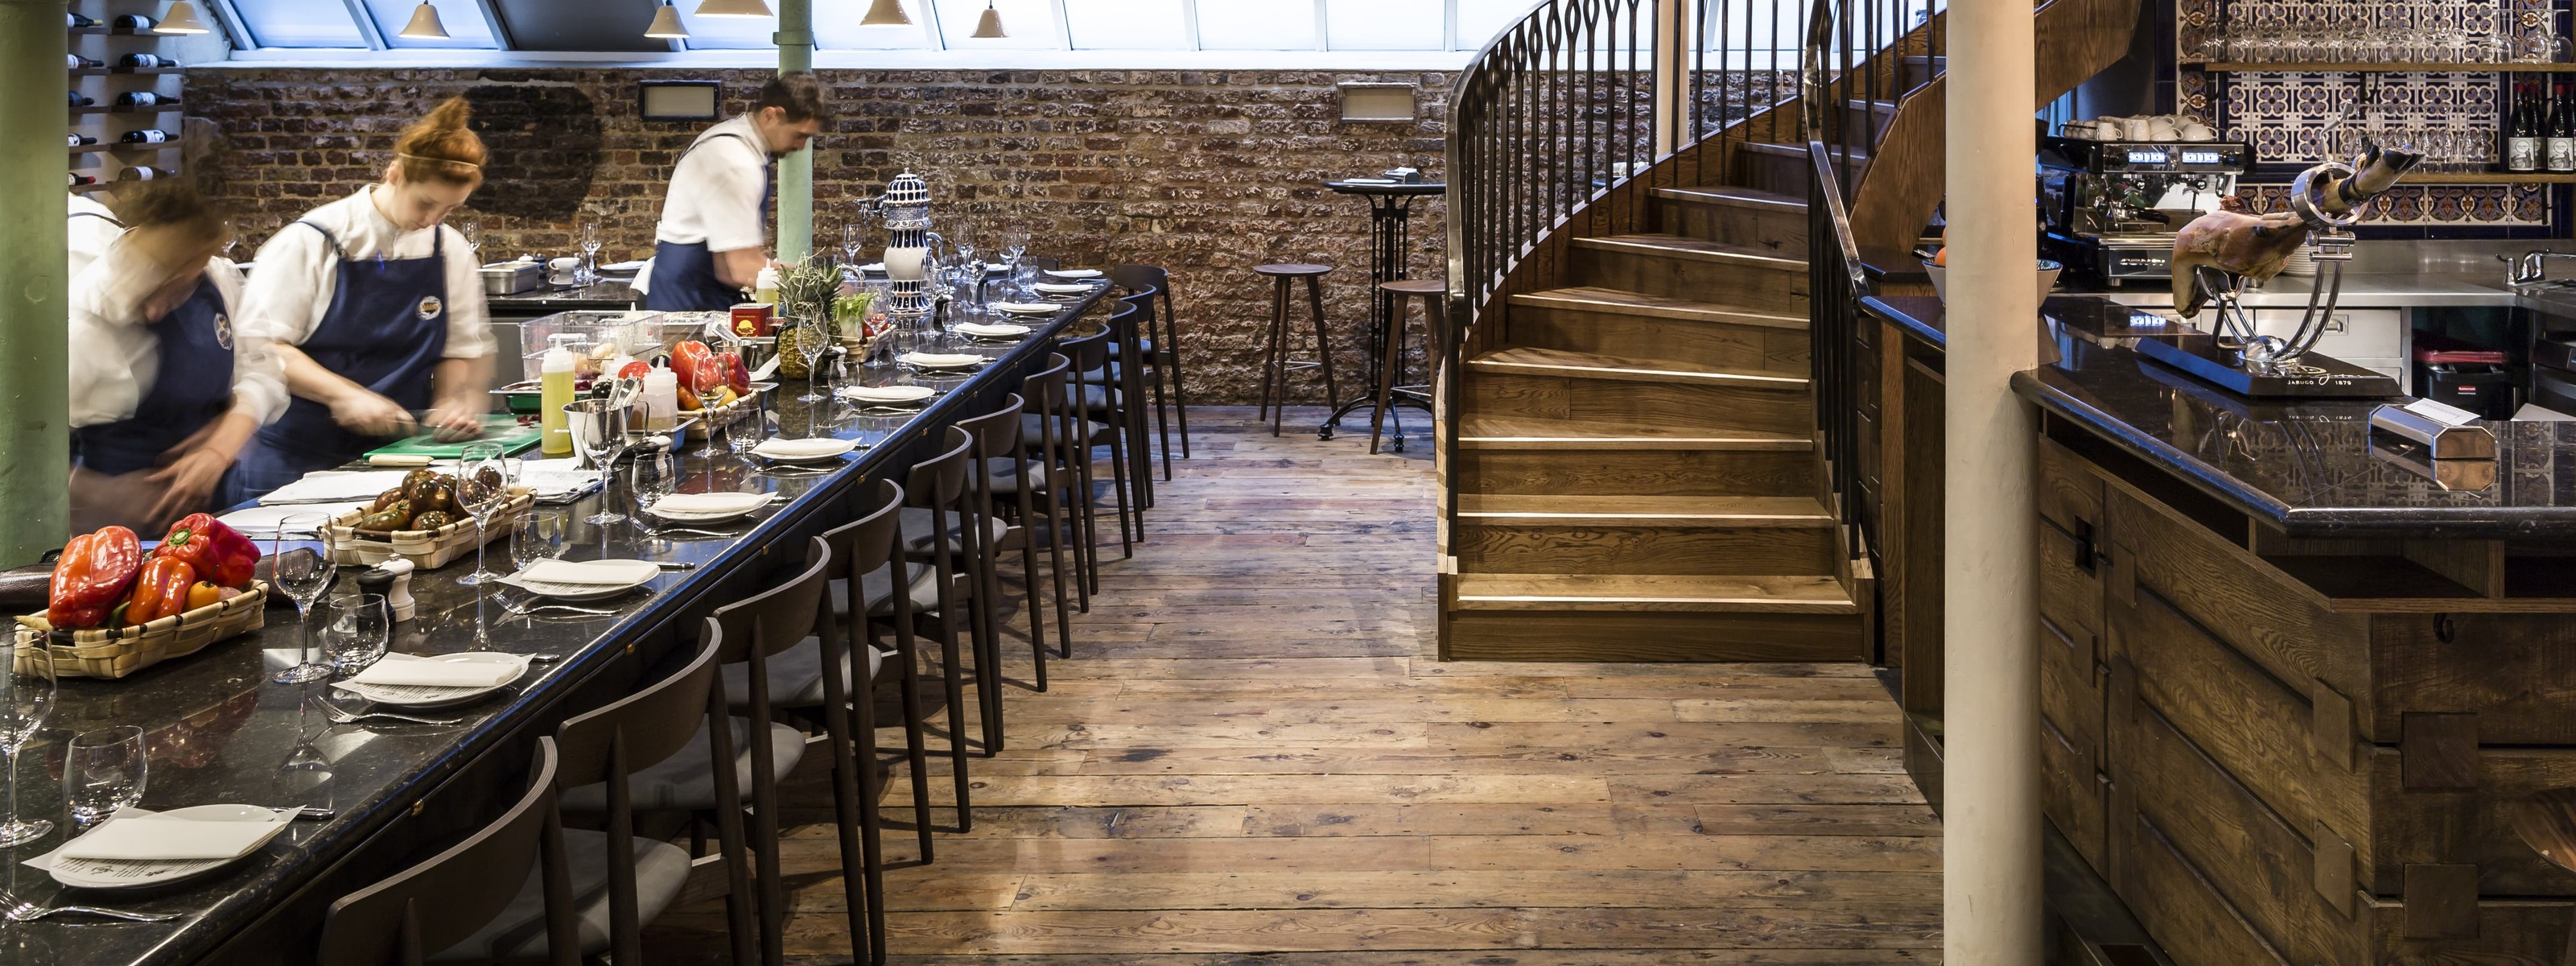 12 Mayfair Restaurants For When You Don't Want To Spend A Lot Of Money - Mayfair - London - The Infatuation